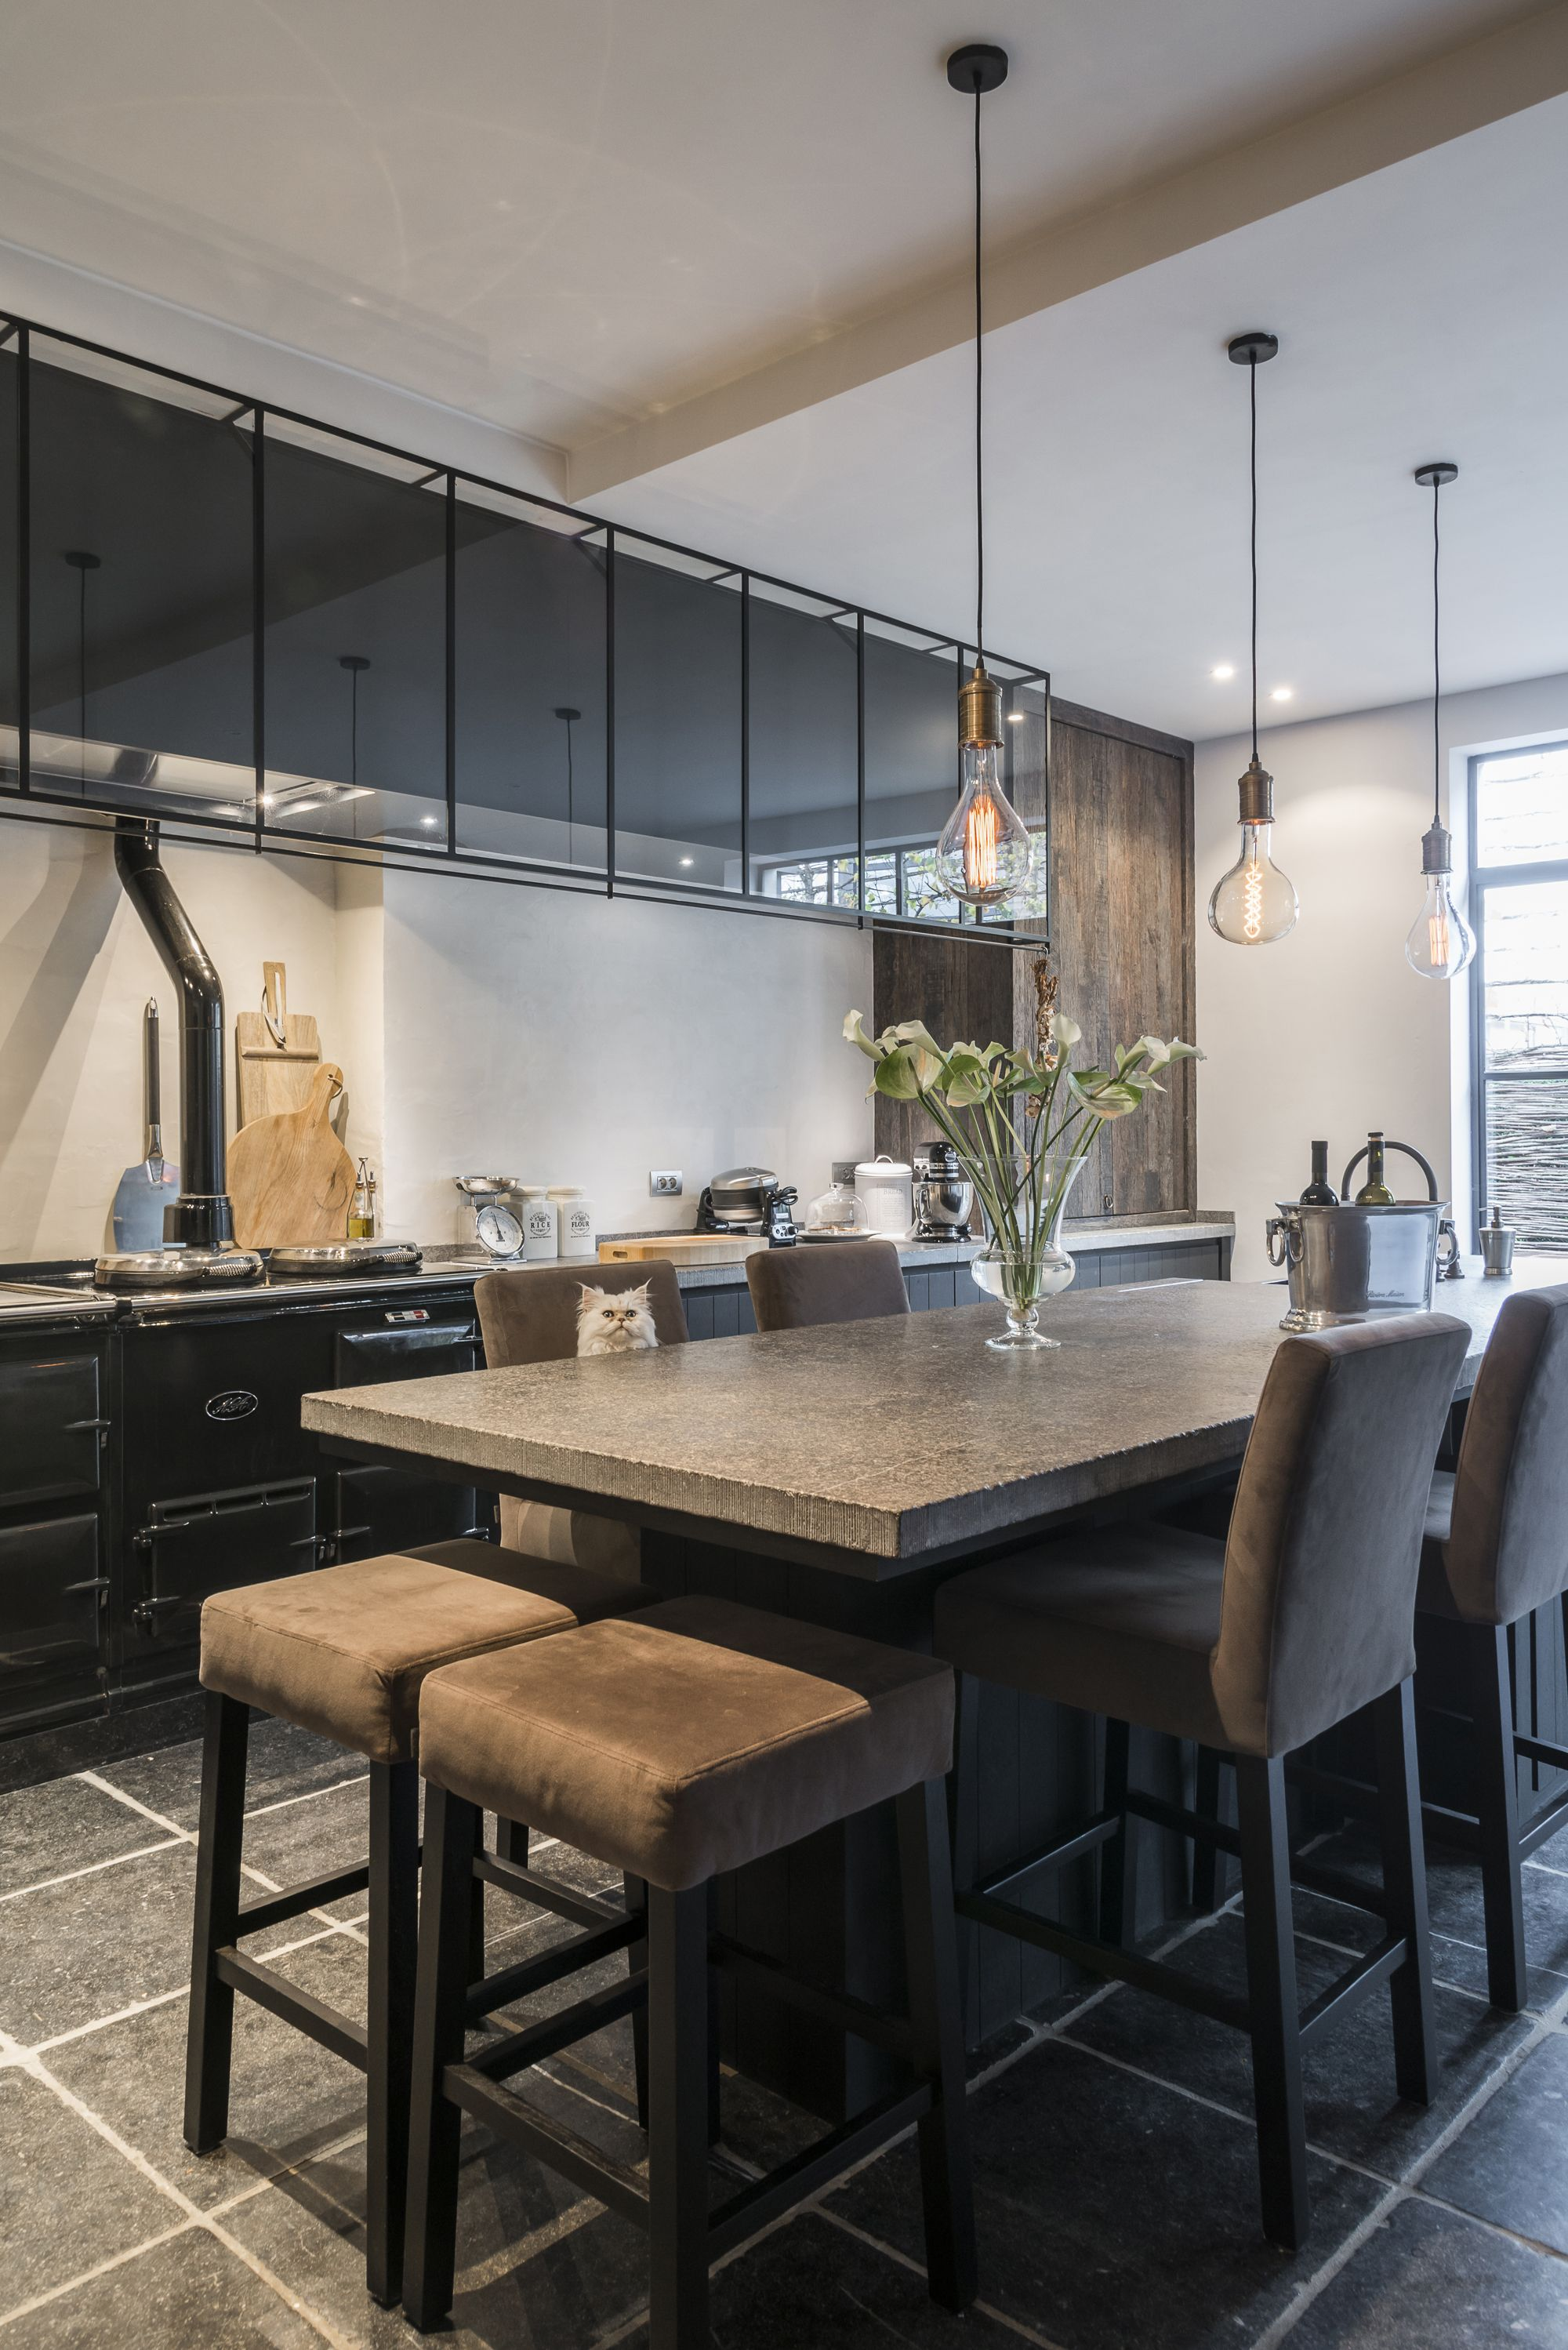 Industriele Keuken Restaurant Slots Décoration Keuken Inspiratie In 2019 Kitchen Design